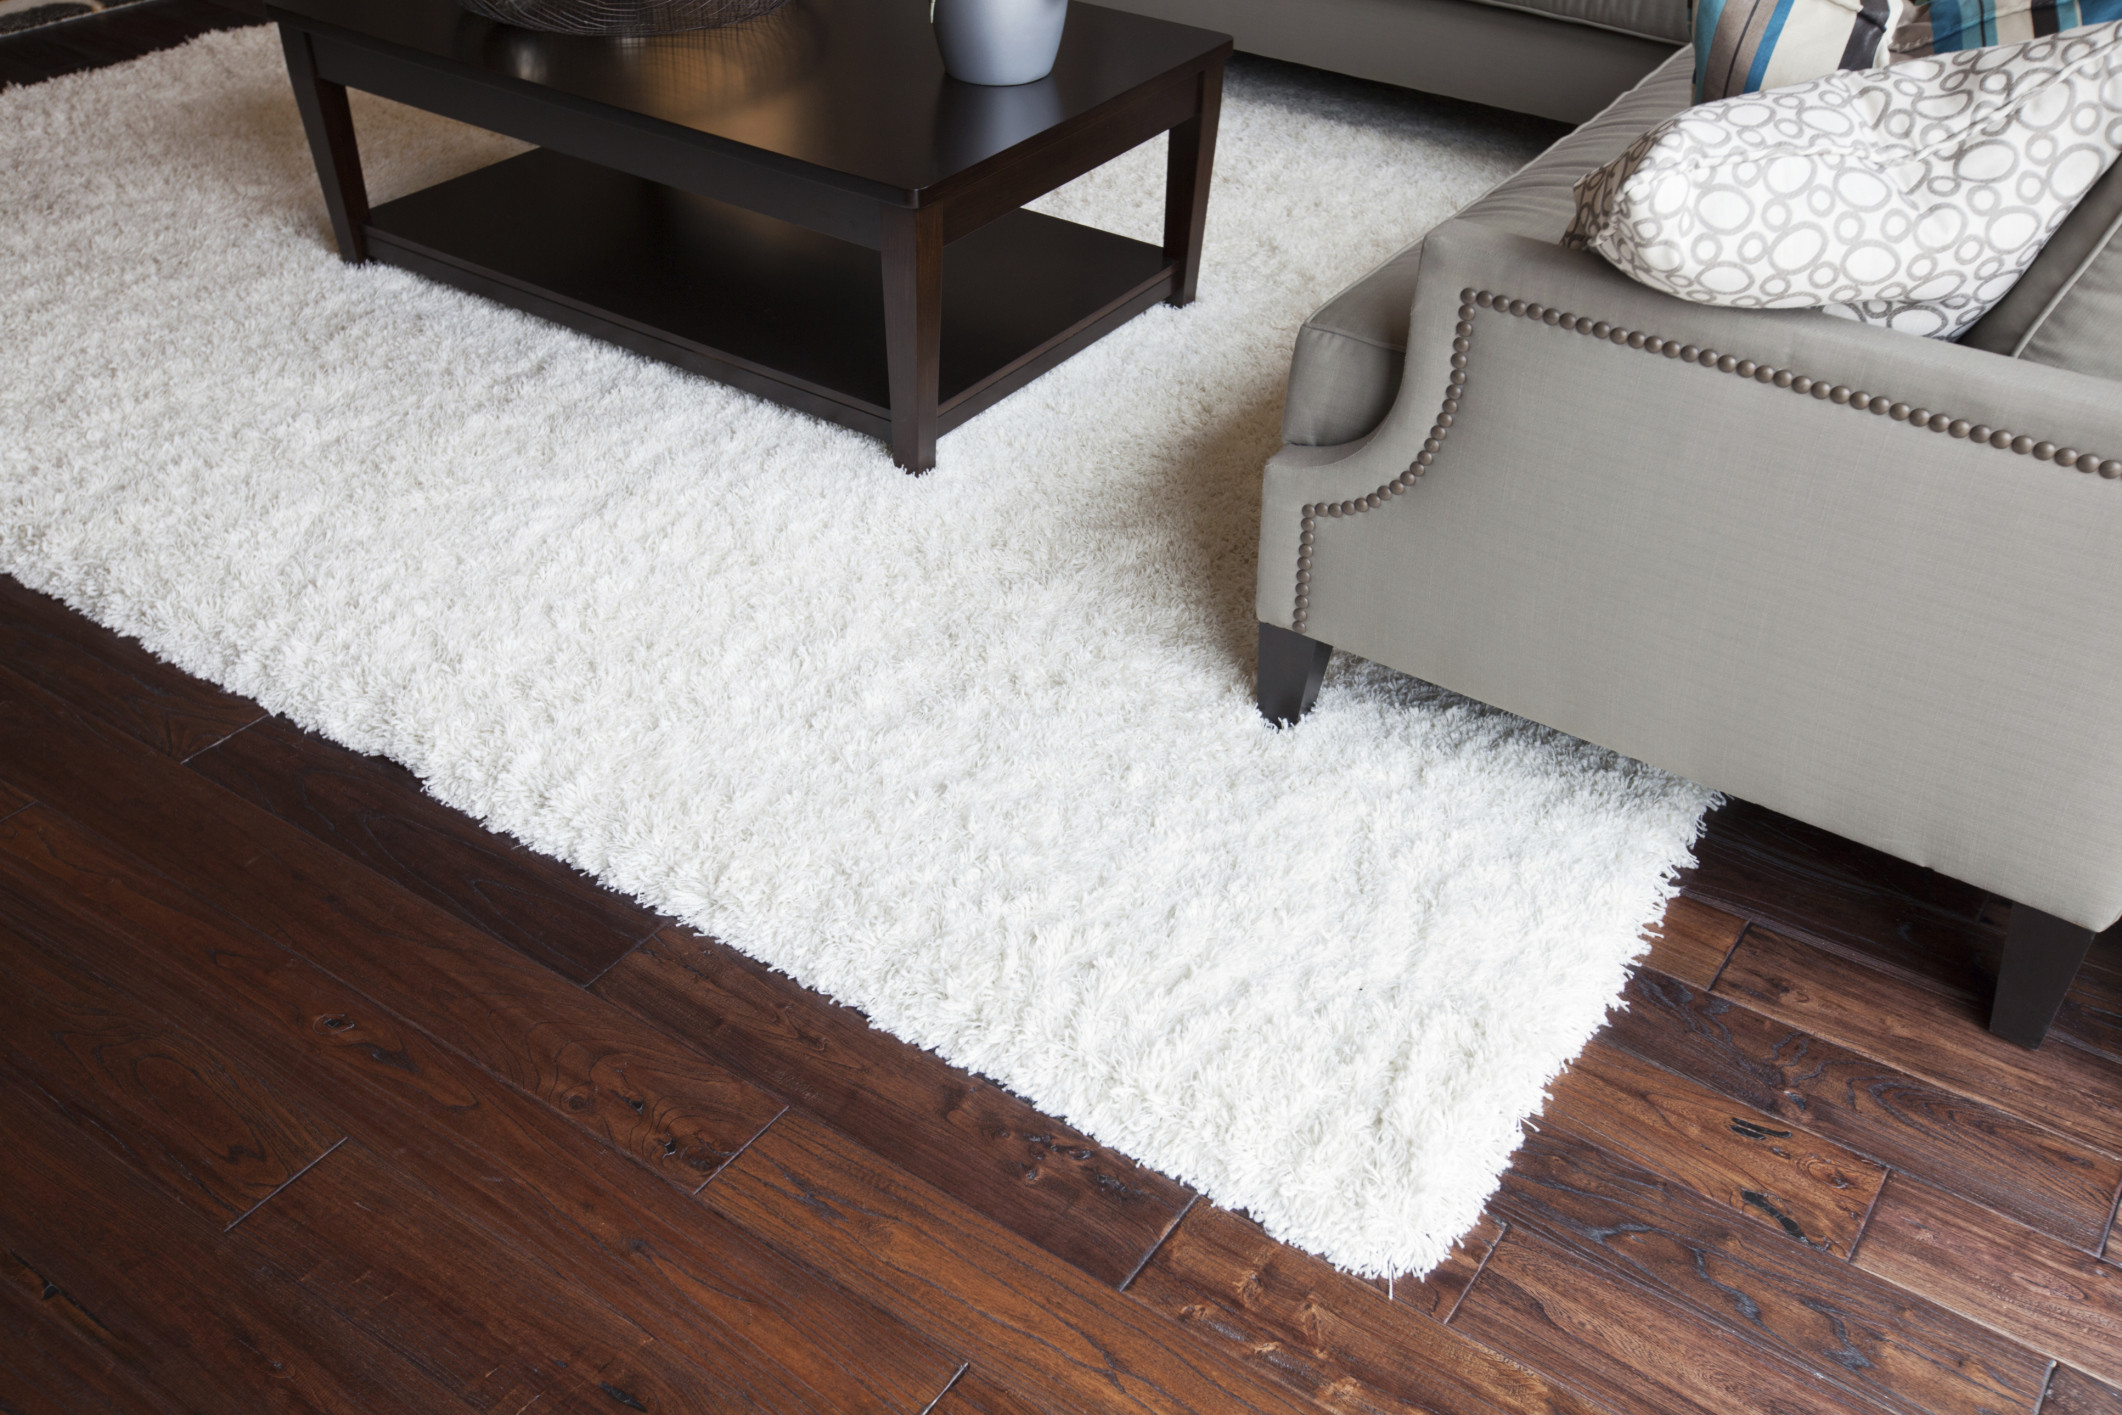 9 things you're doing to ruin your hardwood floors without even